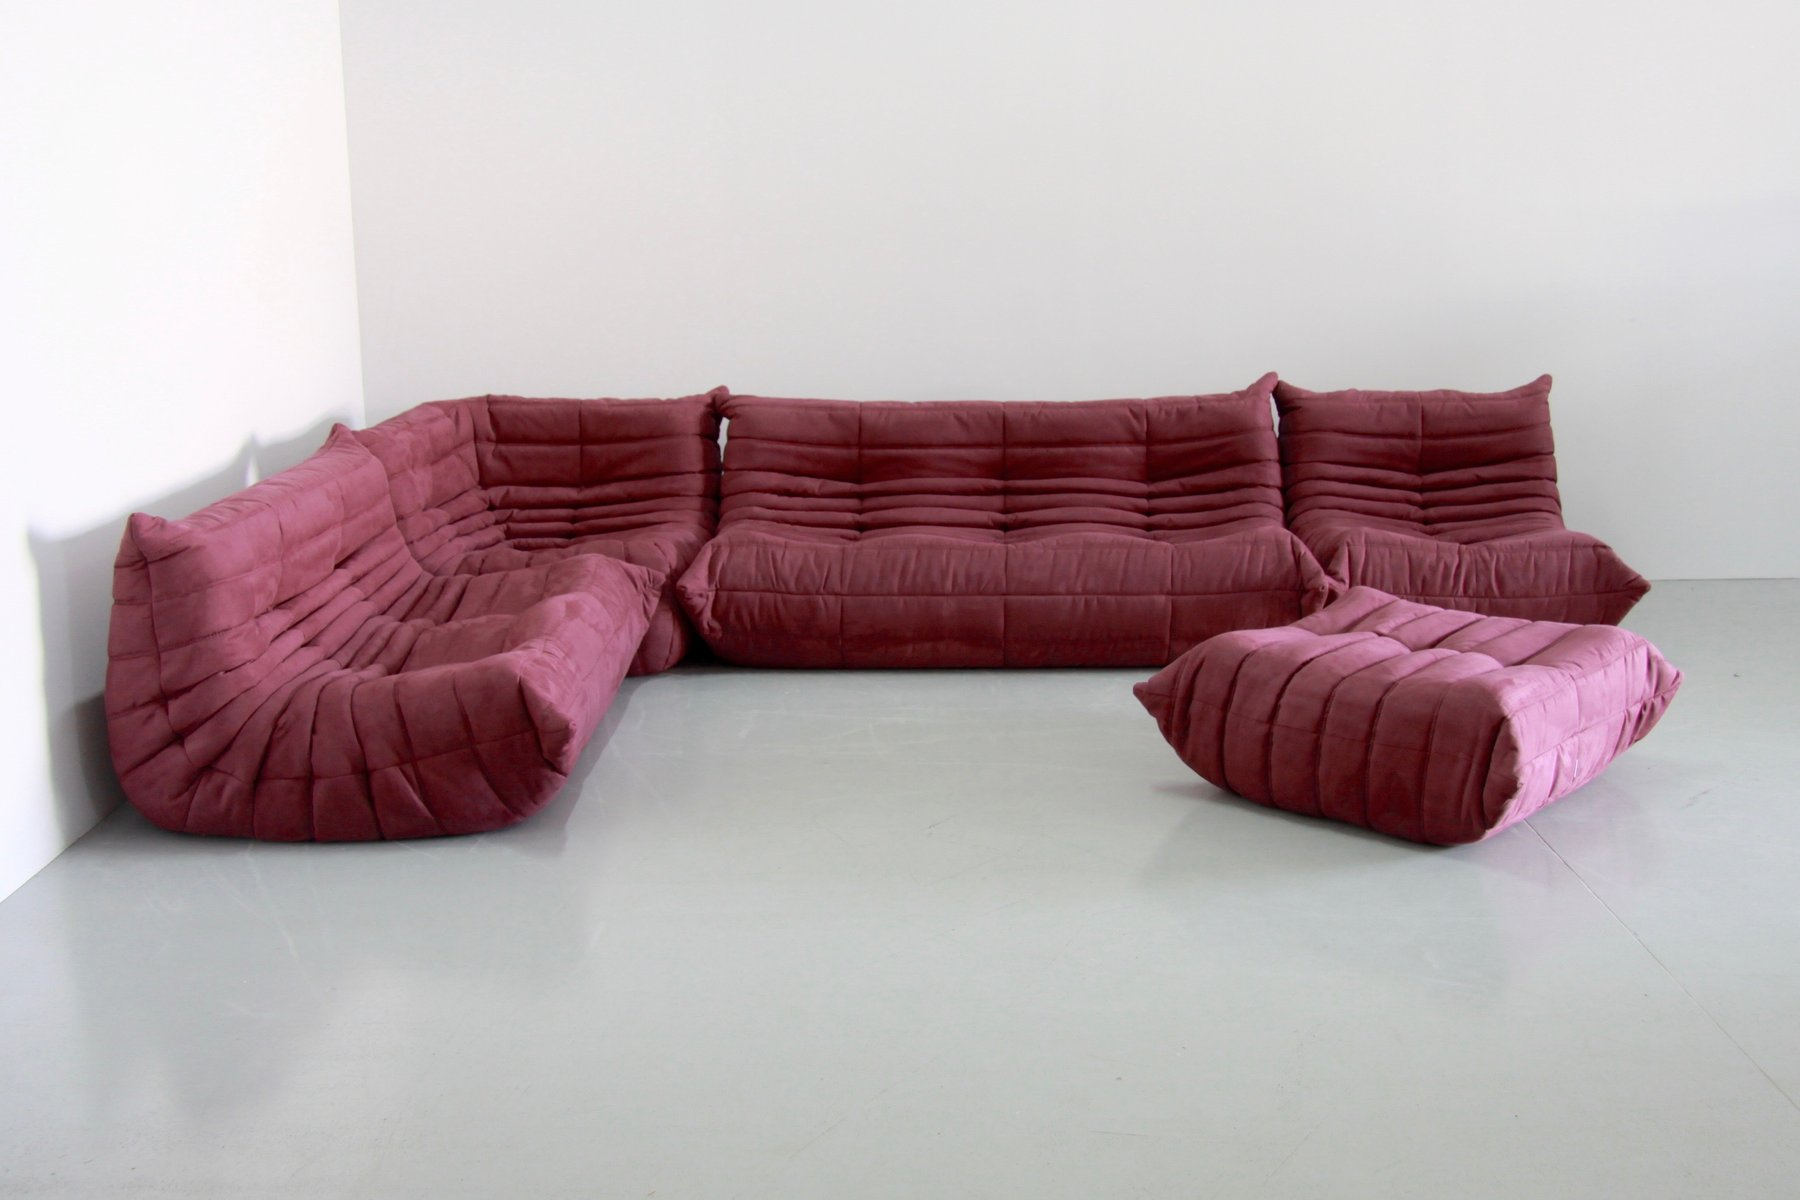 Vintage aubergine togo living room set by michel ducaroy for ligne roset for sale at pamono - Togo ligne roset ...